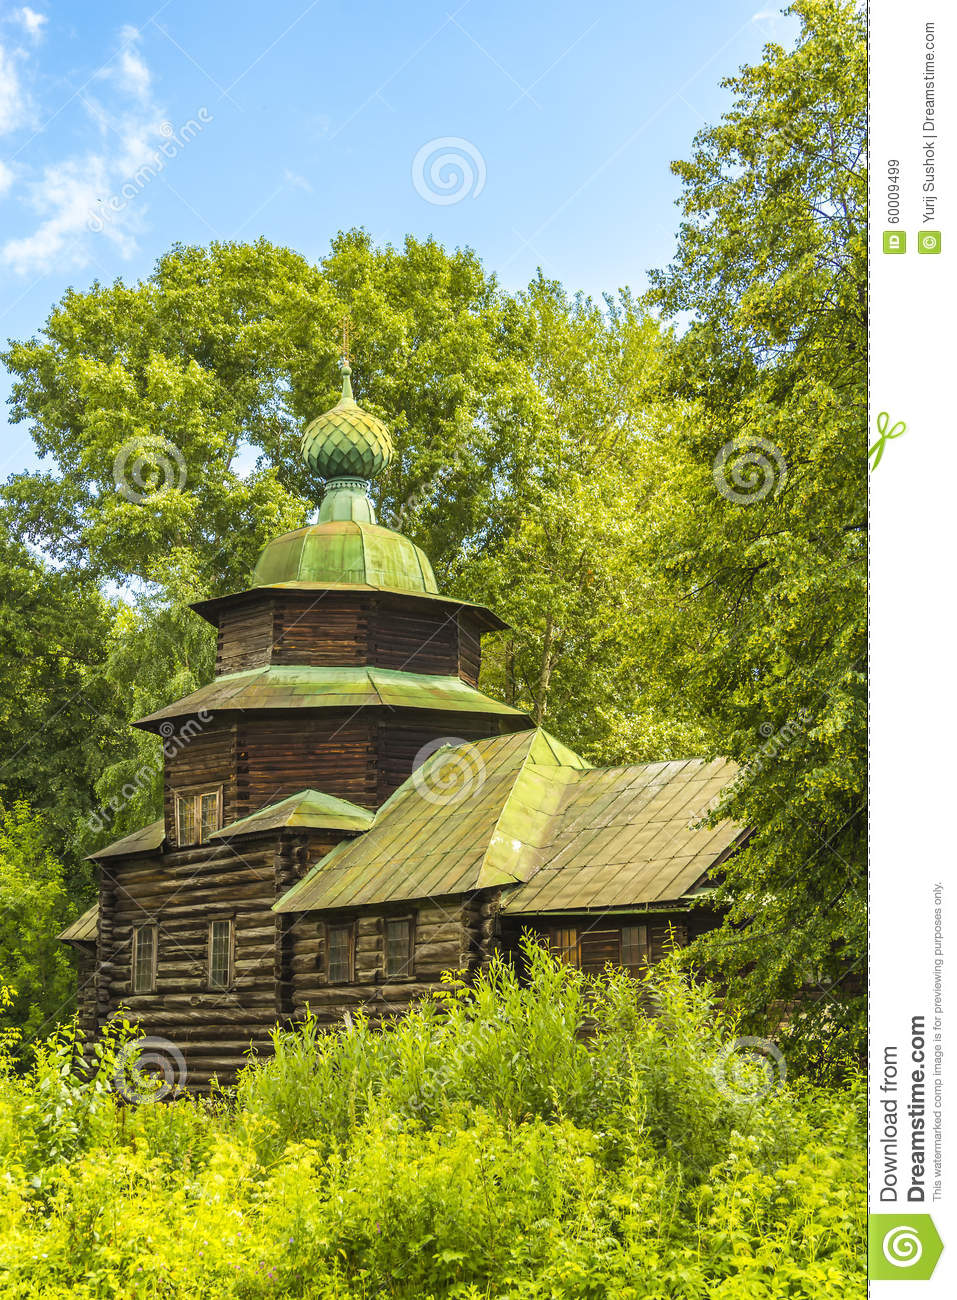 Download Wooden Architecture, The Church Of Elijah The Prophet Stock Image - Image of golden, museum: 60009499